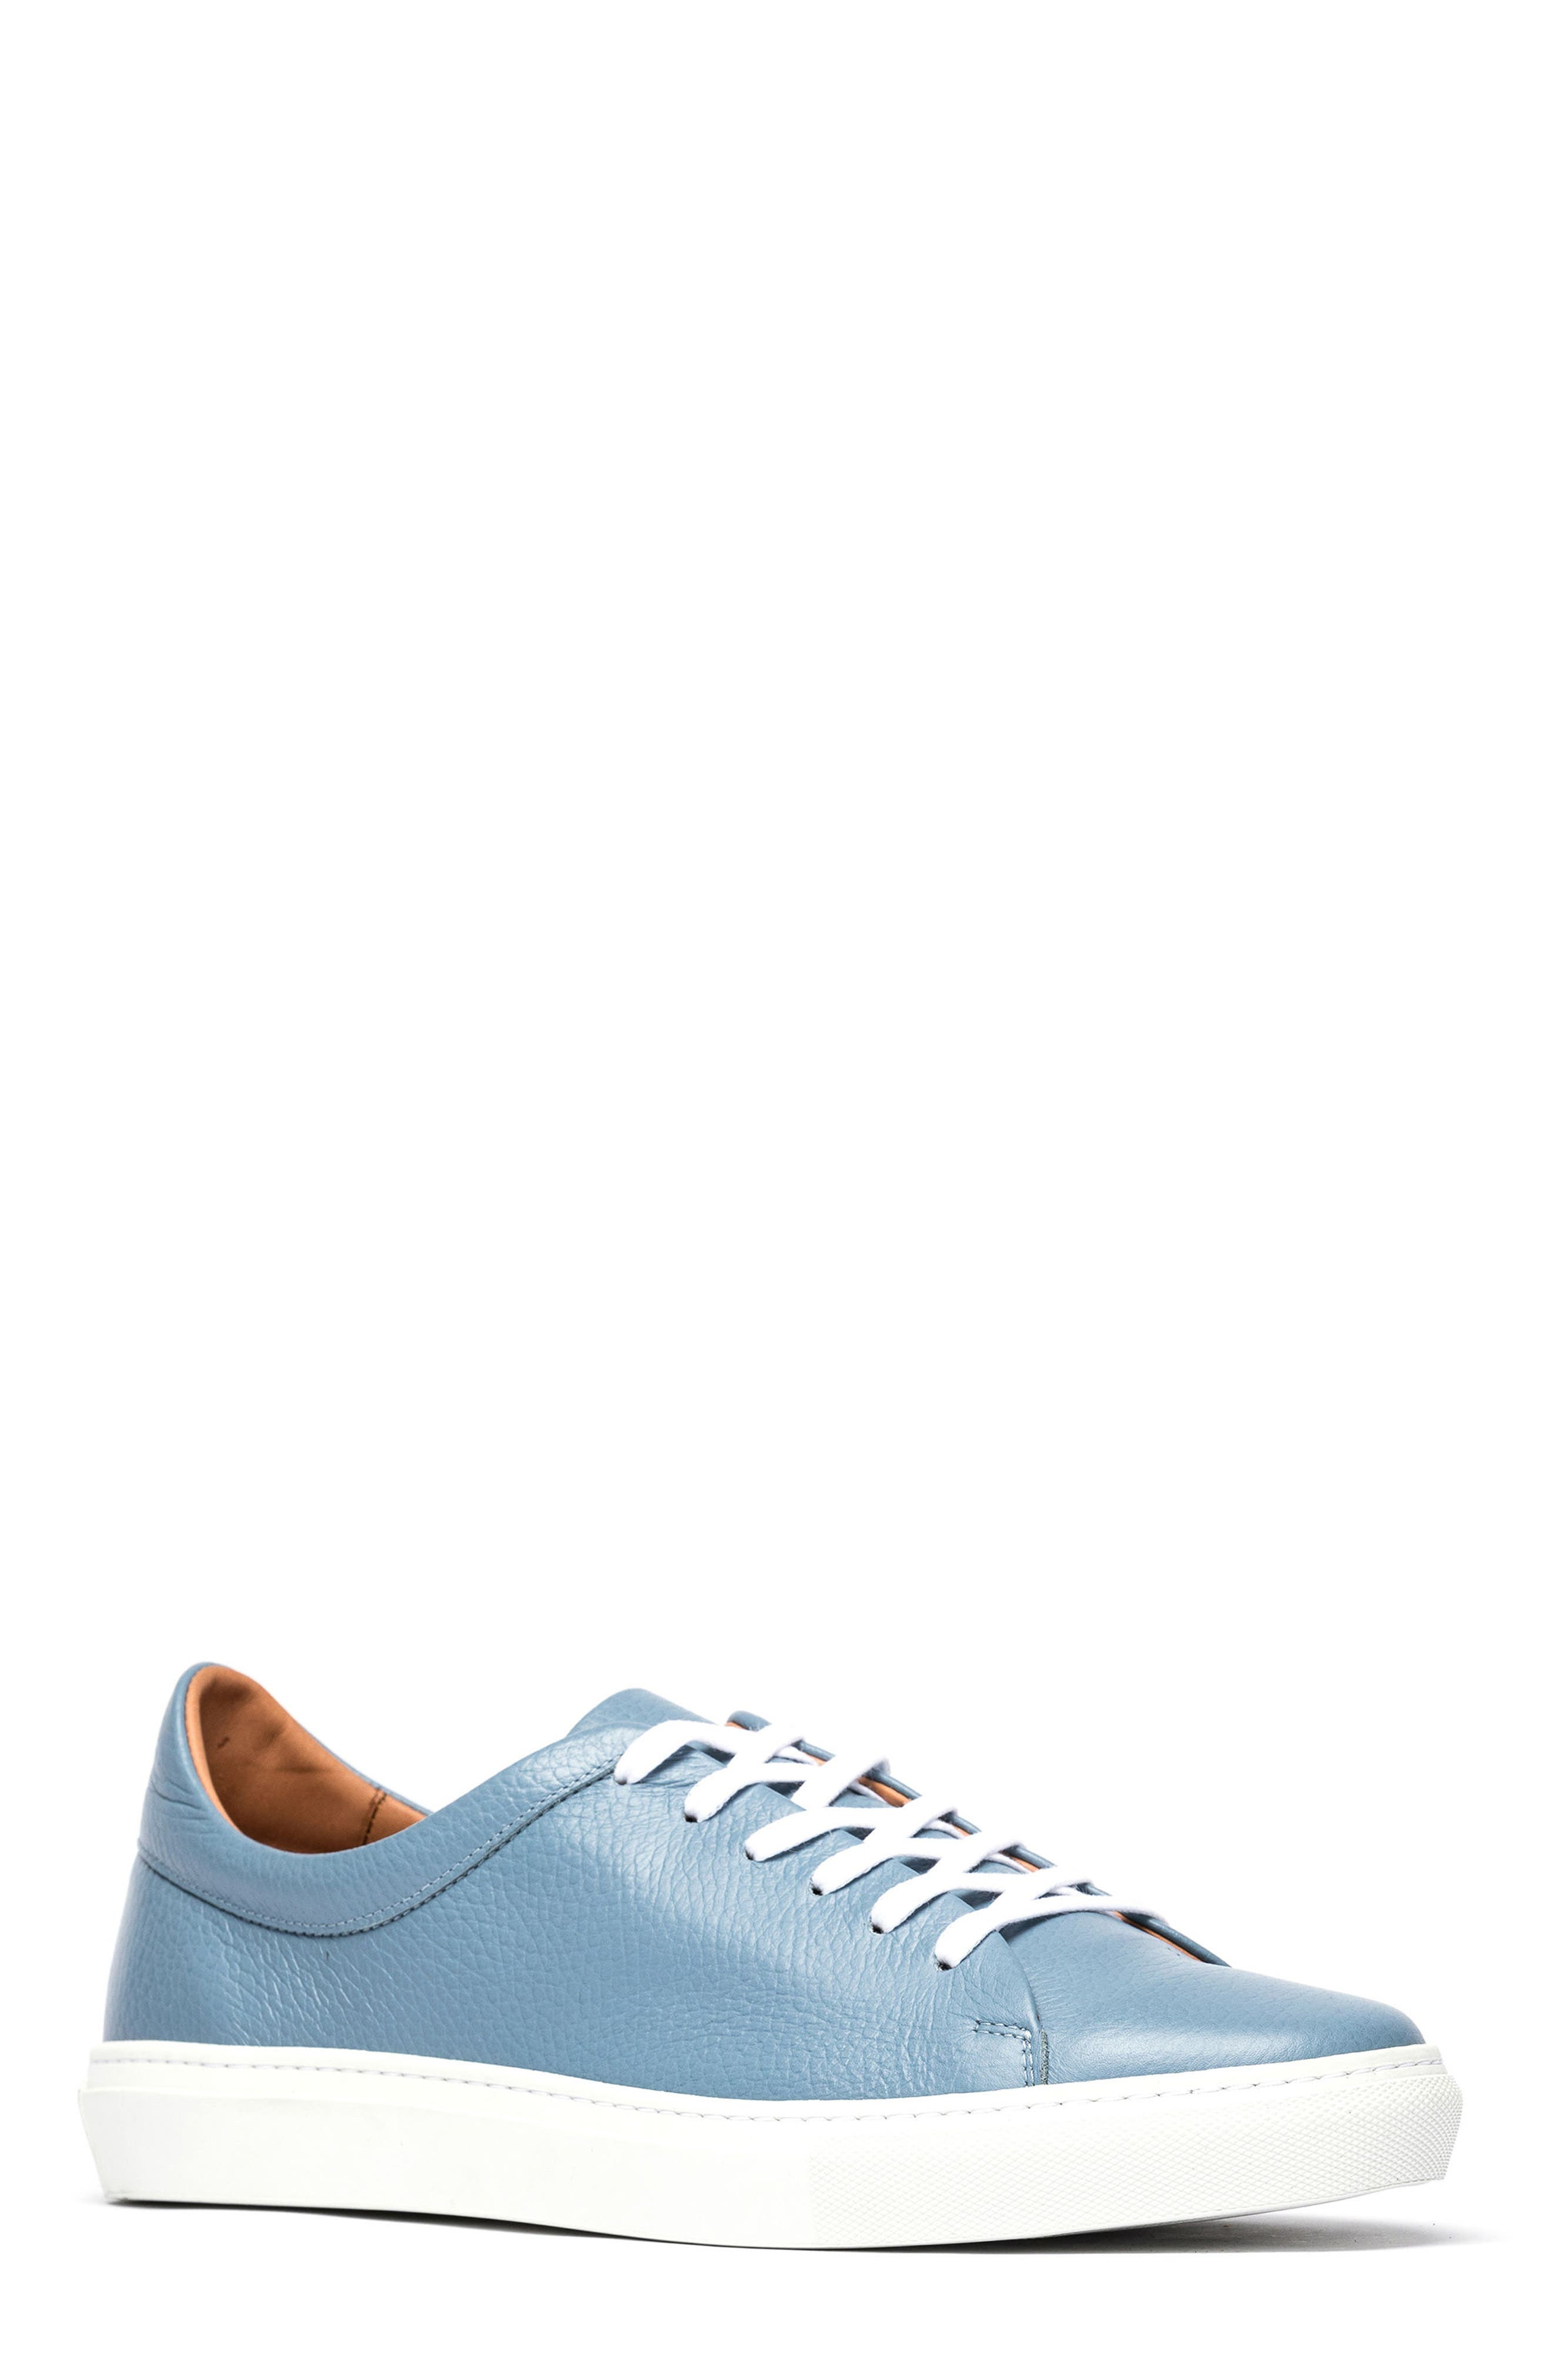 Windemere Sneaker,                             Main thumbnail 1, color,                             Sky Blue Leather